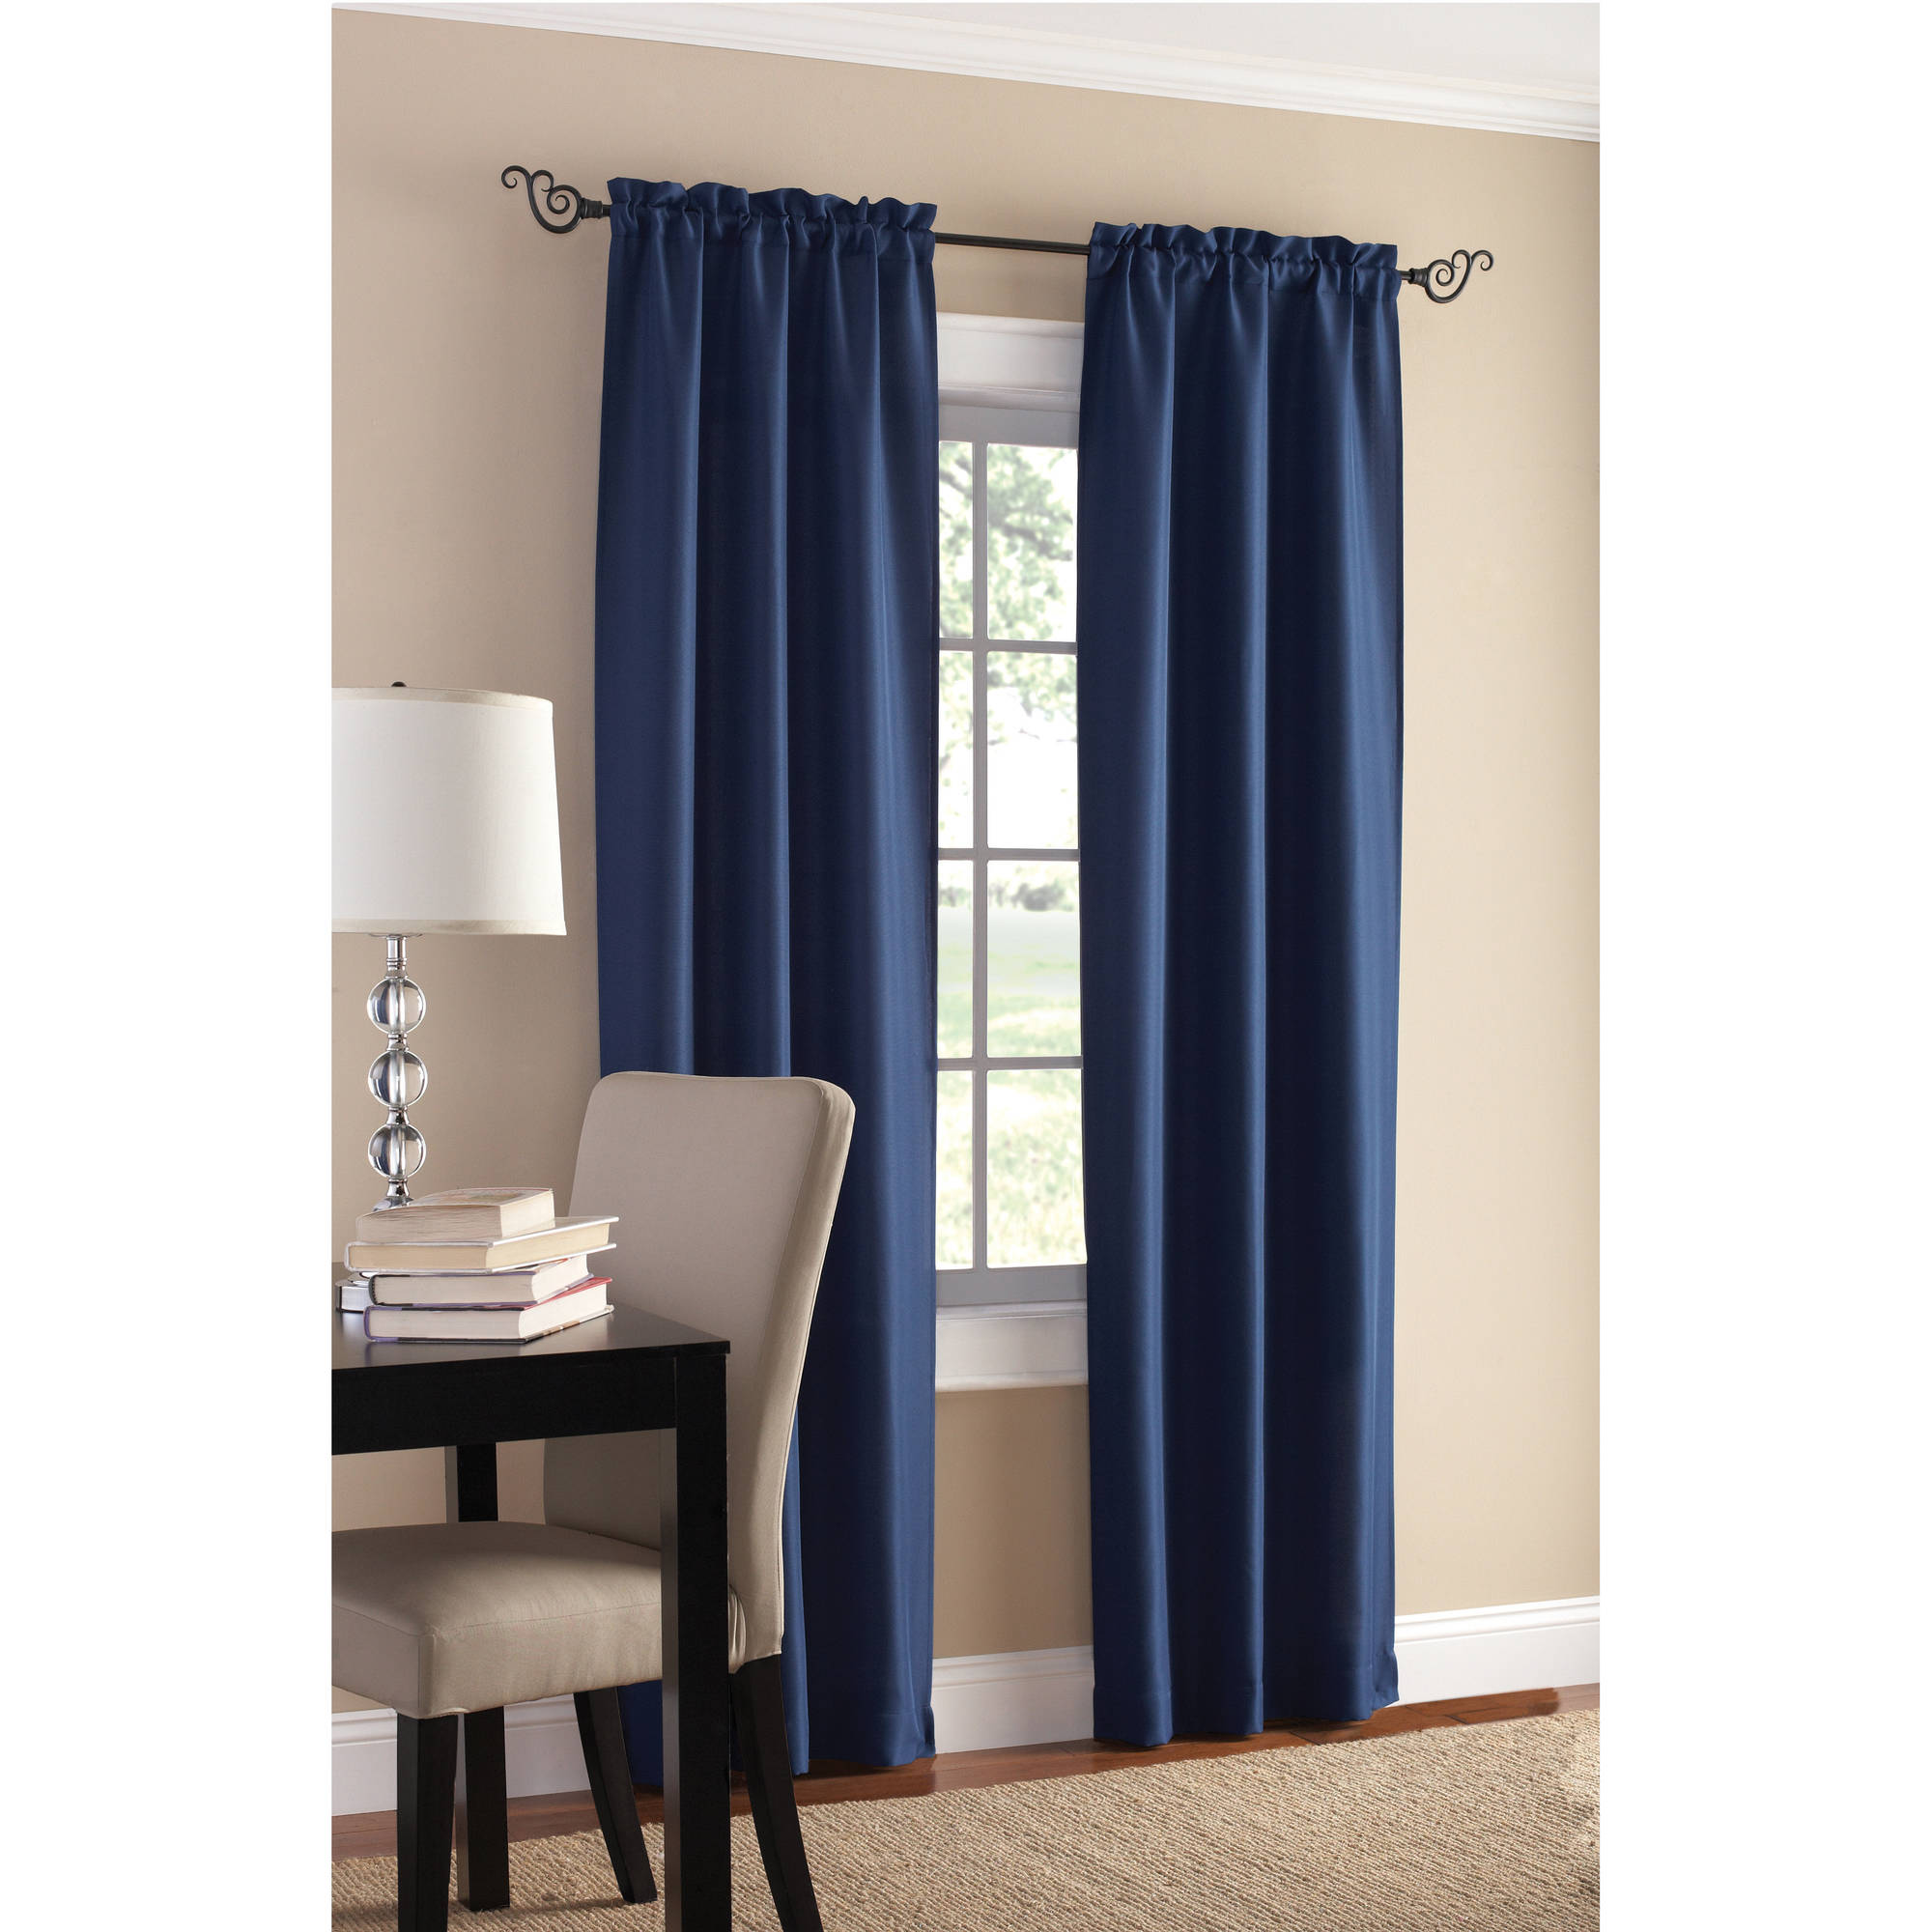 cheap coral image curtain tan greeniteconomicsummit curtains decorating amazing and white permalink org navy l